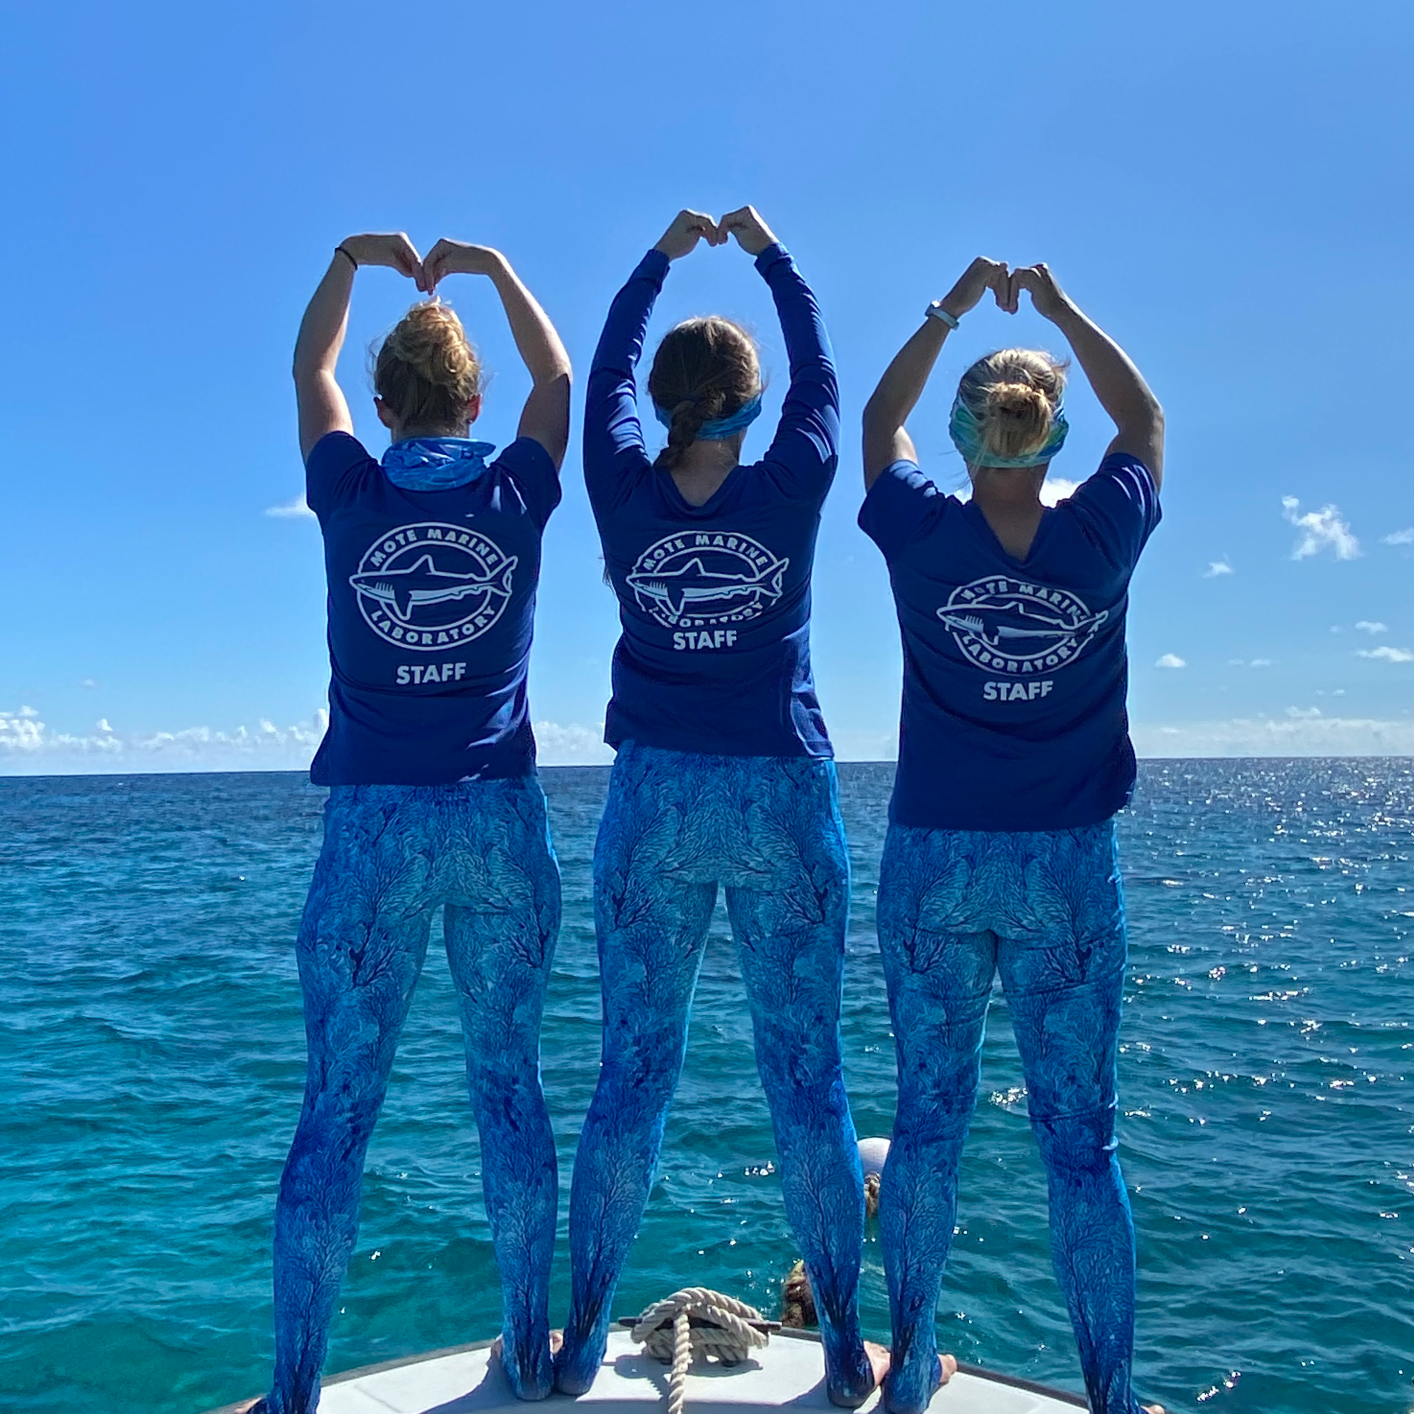 Three Mote staff members stand on a boat and raise their arms to make a heart shape.